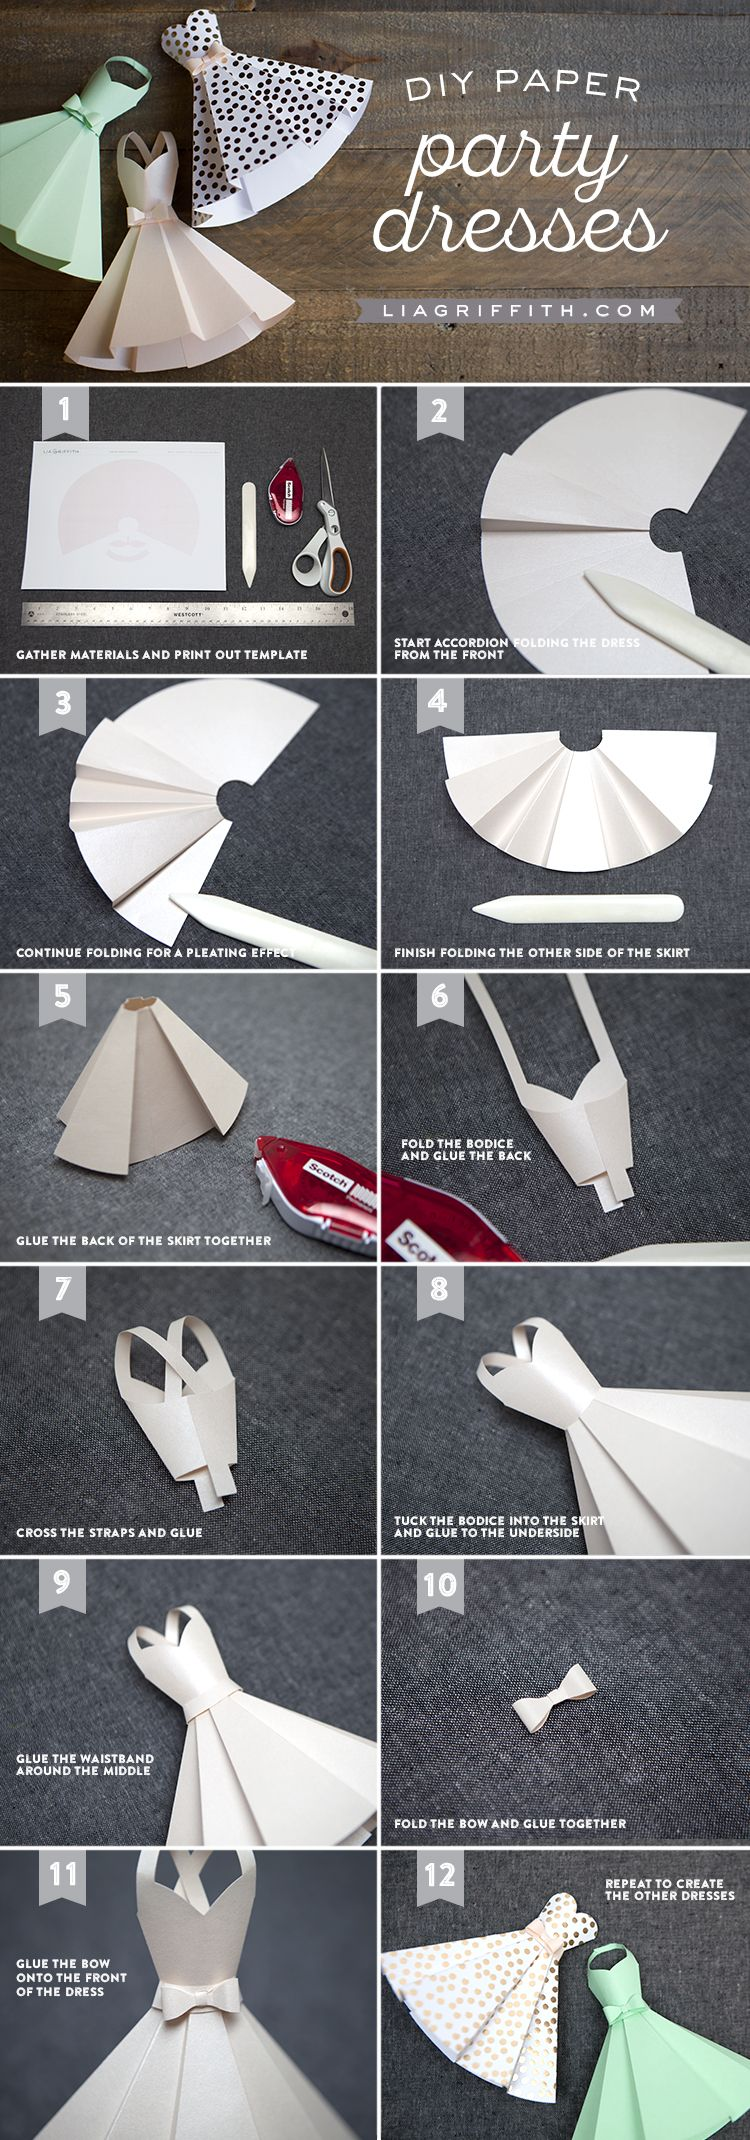 Paper dress diy wedding decorations diy pinterest faa voc tutorial paper party or wedding dress invitations from michaelsmakers lia griffith junglespirit Gallery